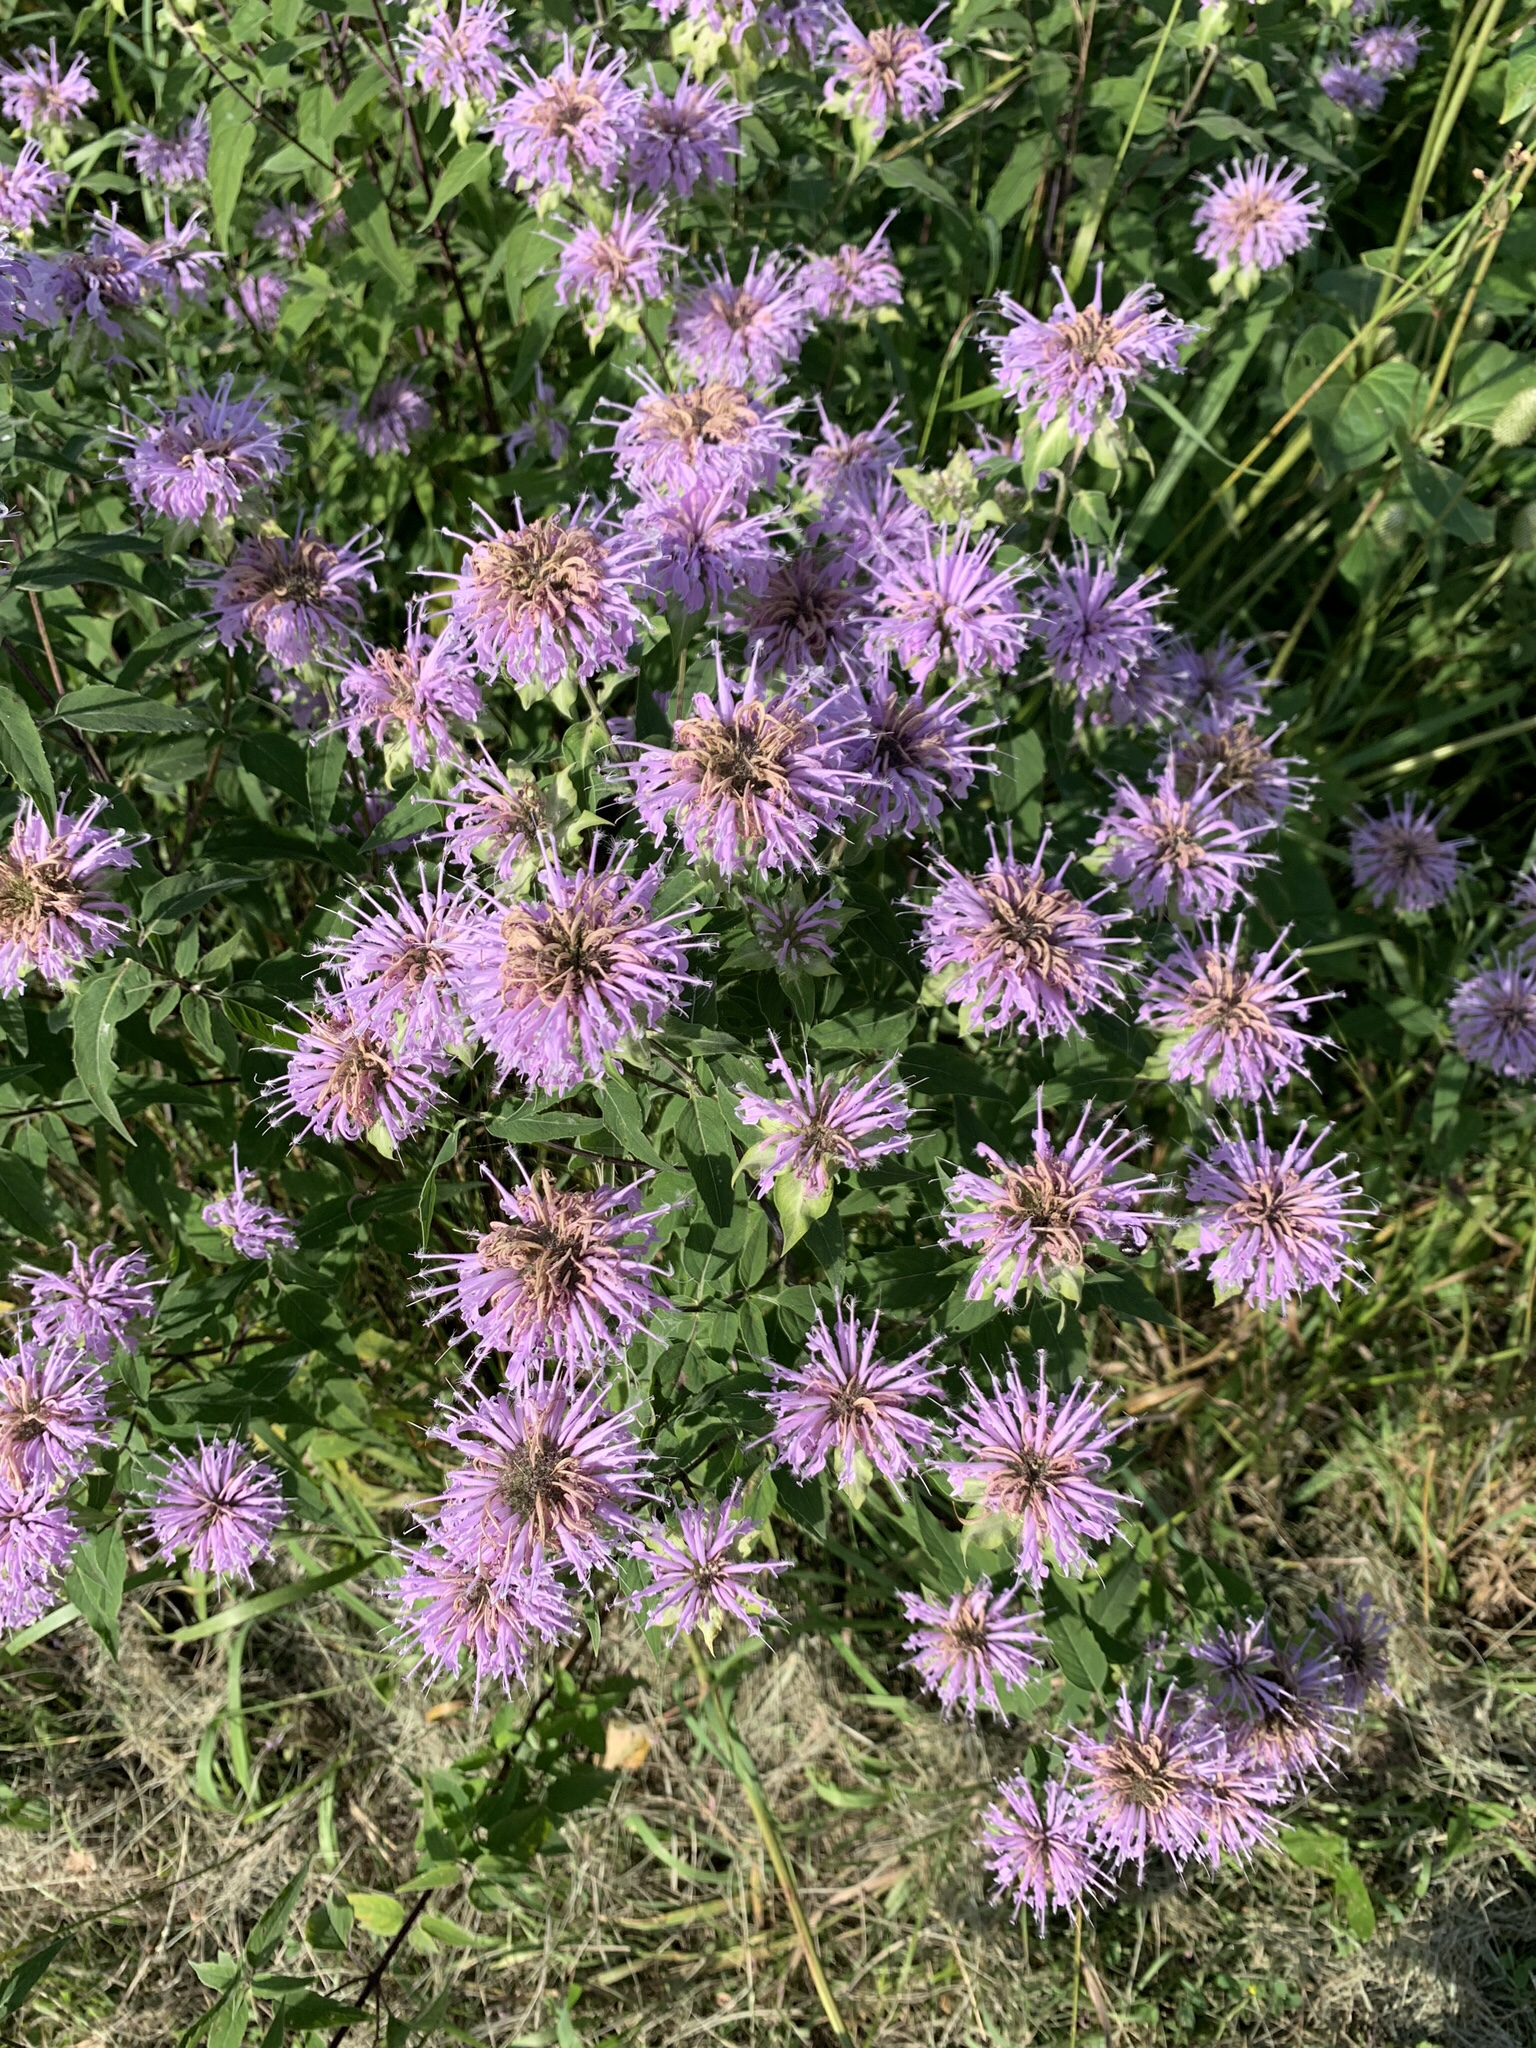 A bouquet of wild bergamot. It smells like Earl Grey tea, but I don't hold that against it.